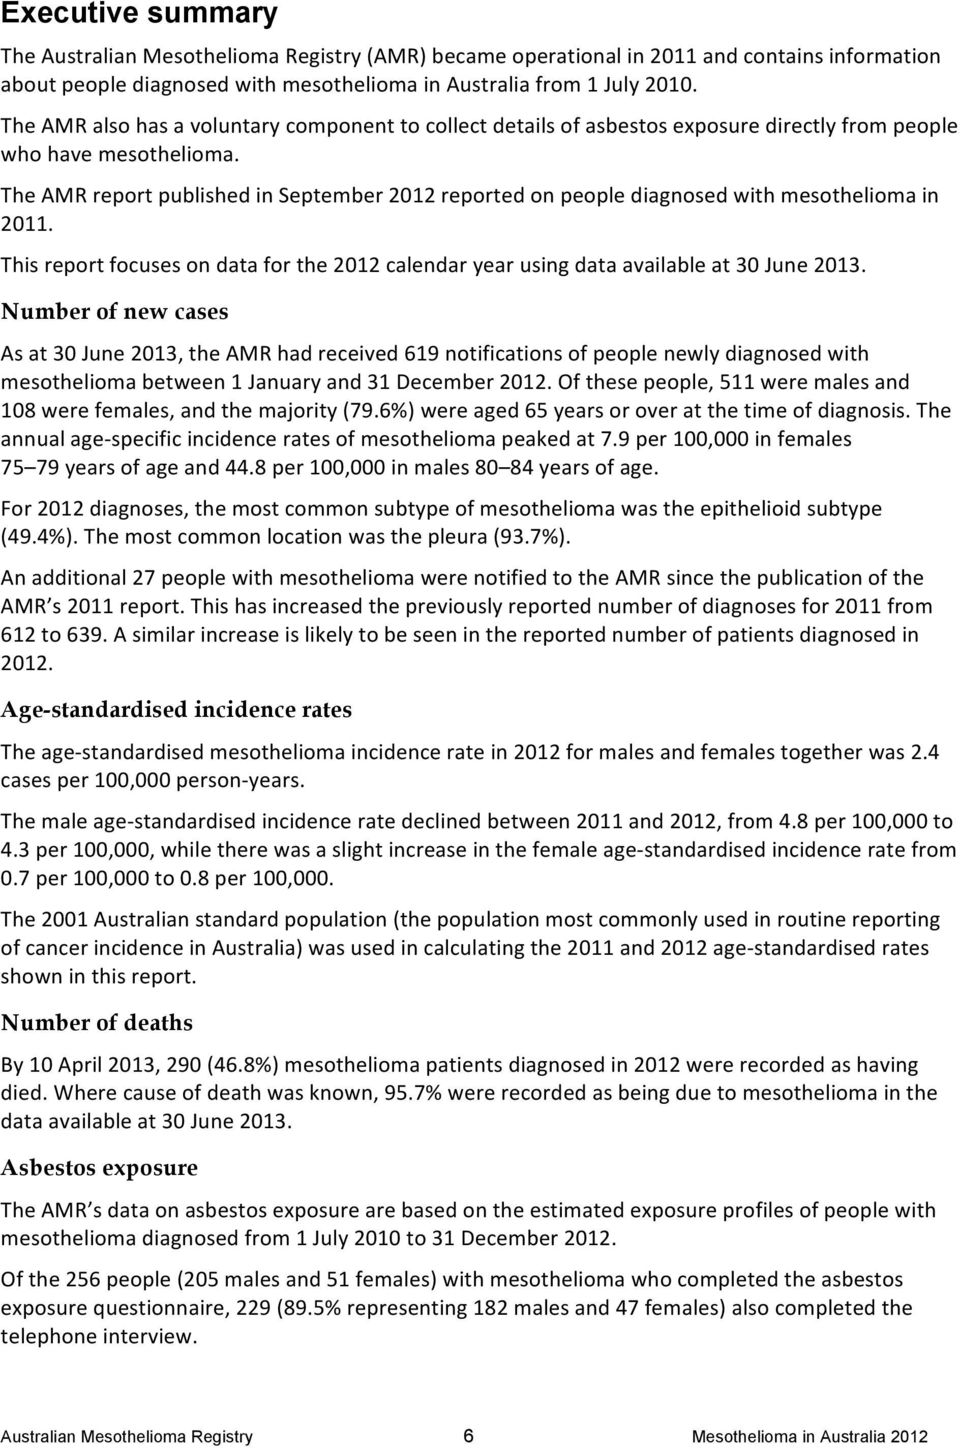 The AMR report published in September 2012 reported on people diagnosed with mesothelioma in 2011. This report focuses on data for the 2012 calendar year using data available at 30 June 2013.